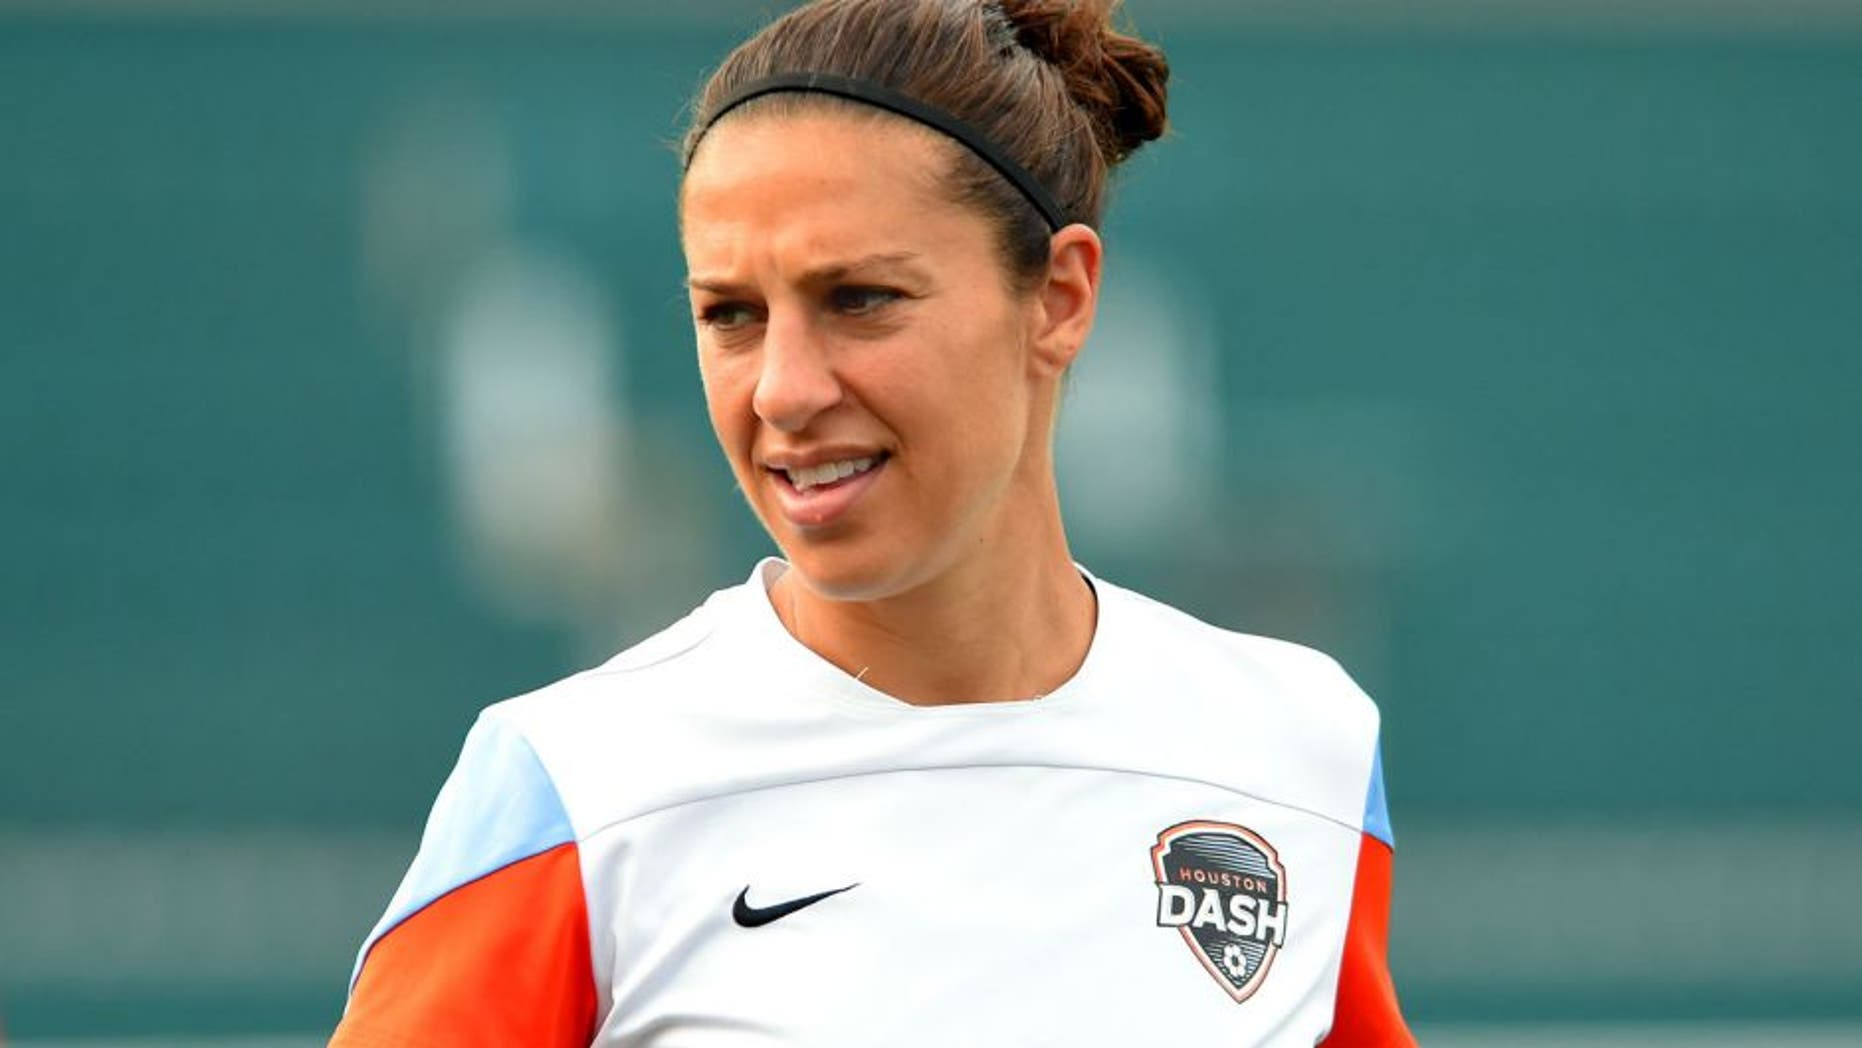 ROCHESTER, NY - JULY 25: Carli Lloyd #10 of the Houston Dash prior to the match against the Western New York Flash at Sahlen's Stadium on July 25, 2015 in Rochester, New York. The Houston Dash defeated the Western New York Flash 1-0. (Photo by Rich Barnes/Getty Images)